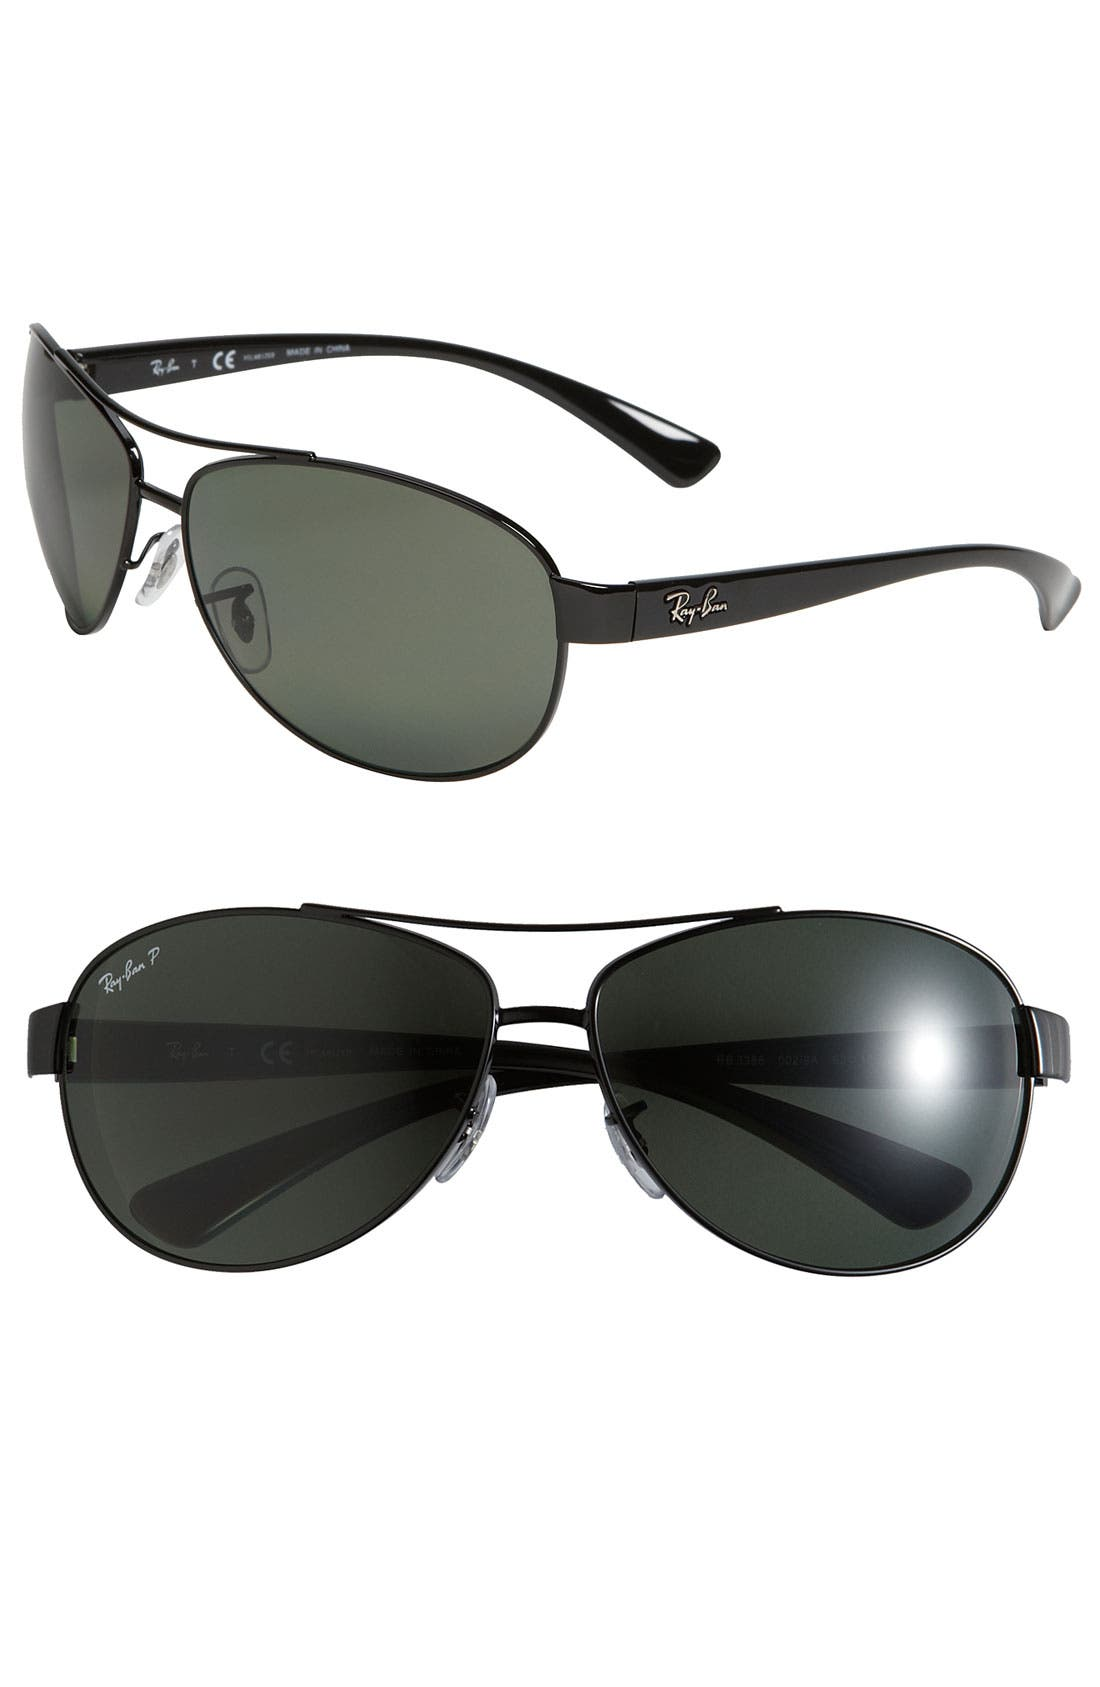 Main Image - Ray-Ban Nylon 63mm Aviator Sunglasses